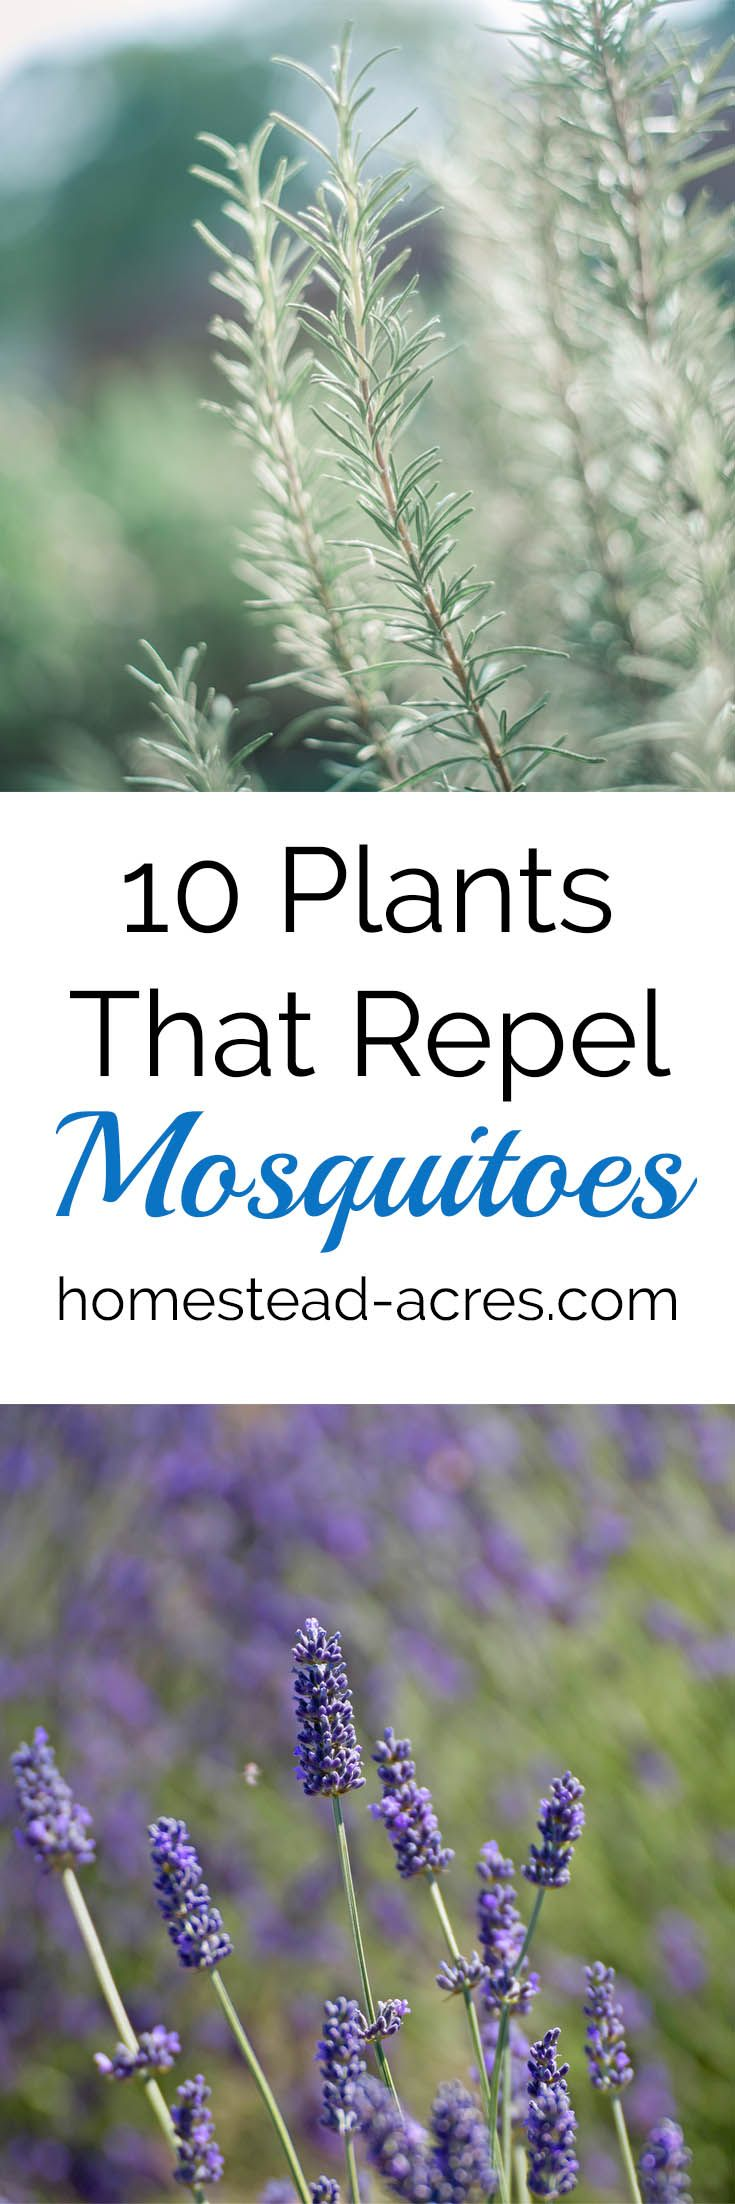 Best 467 pests be gone images on pinterest other for Best plants to keep mosquitoes away